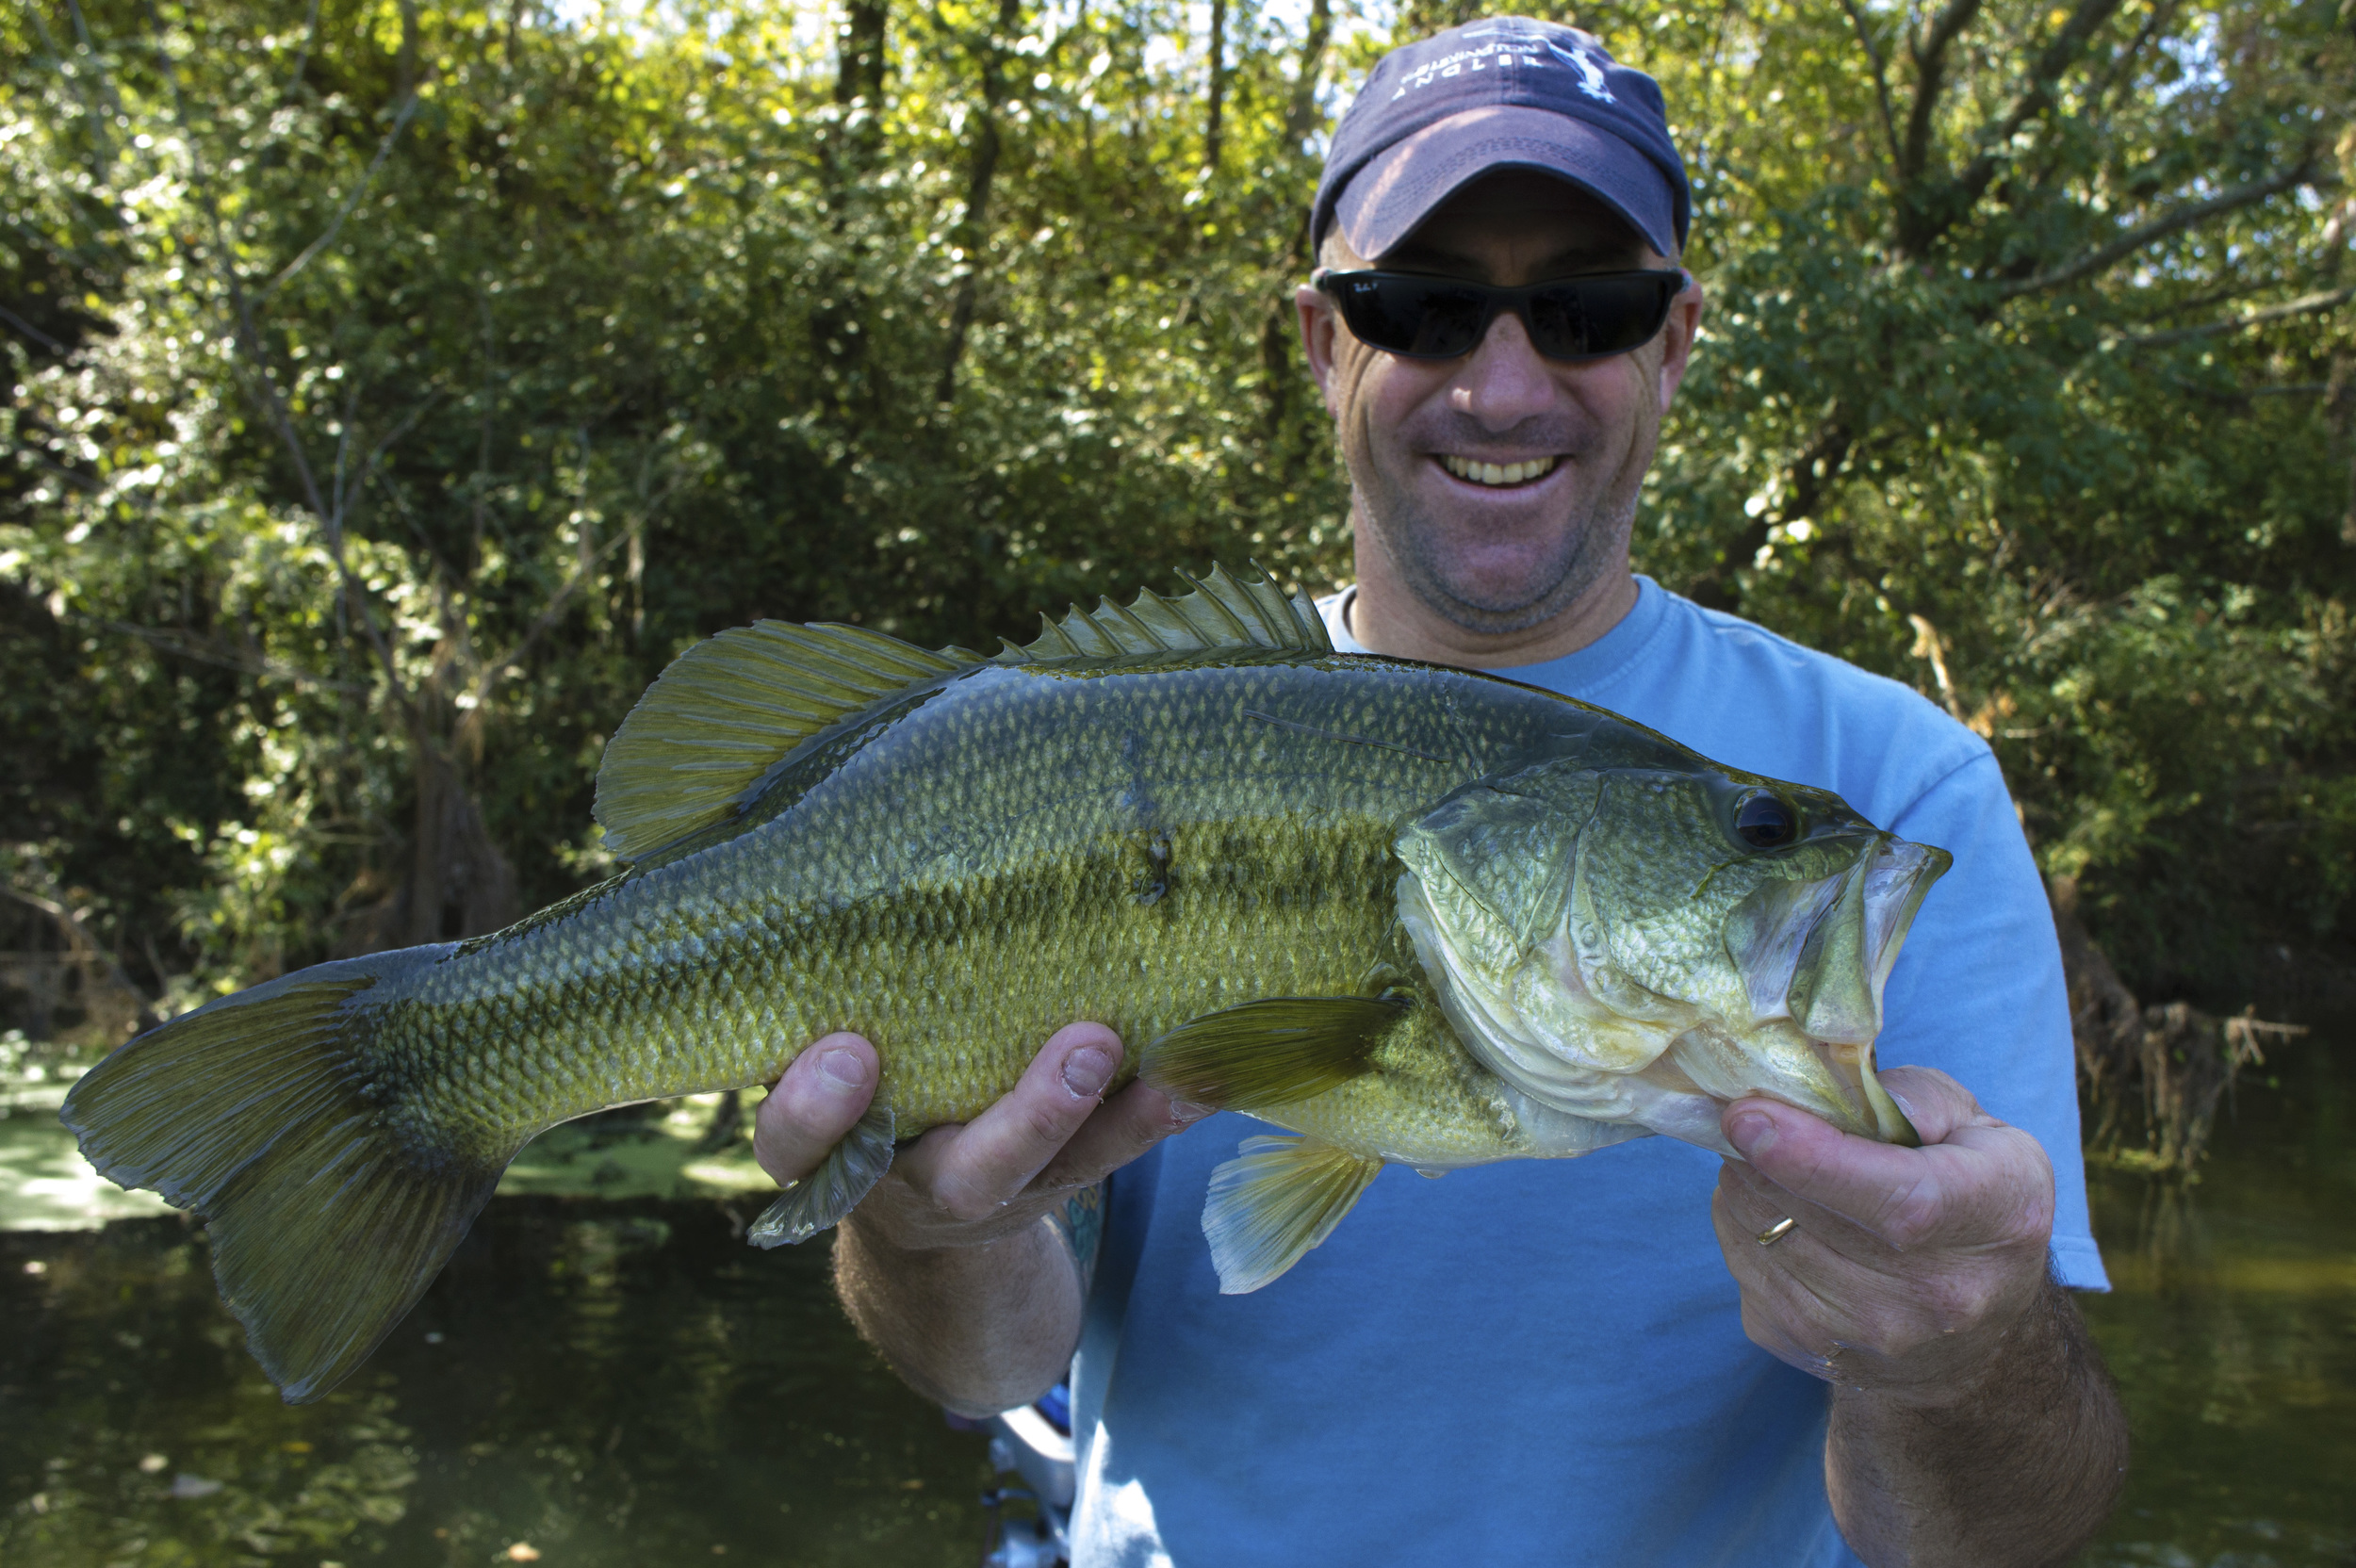 Winston Cundiff with a huge Colorado River bass